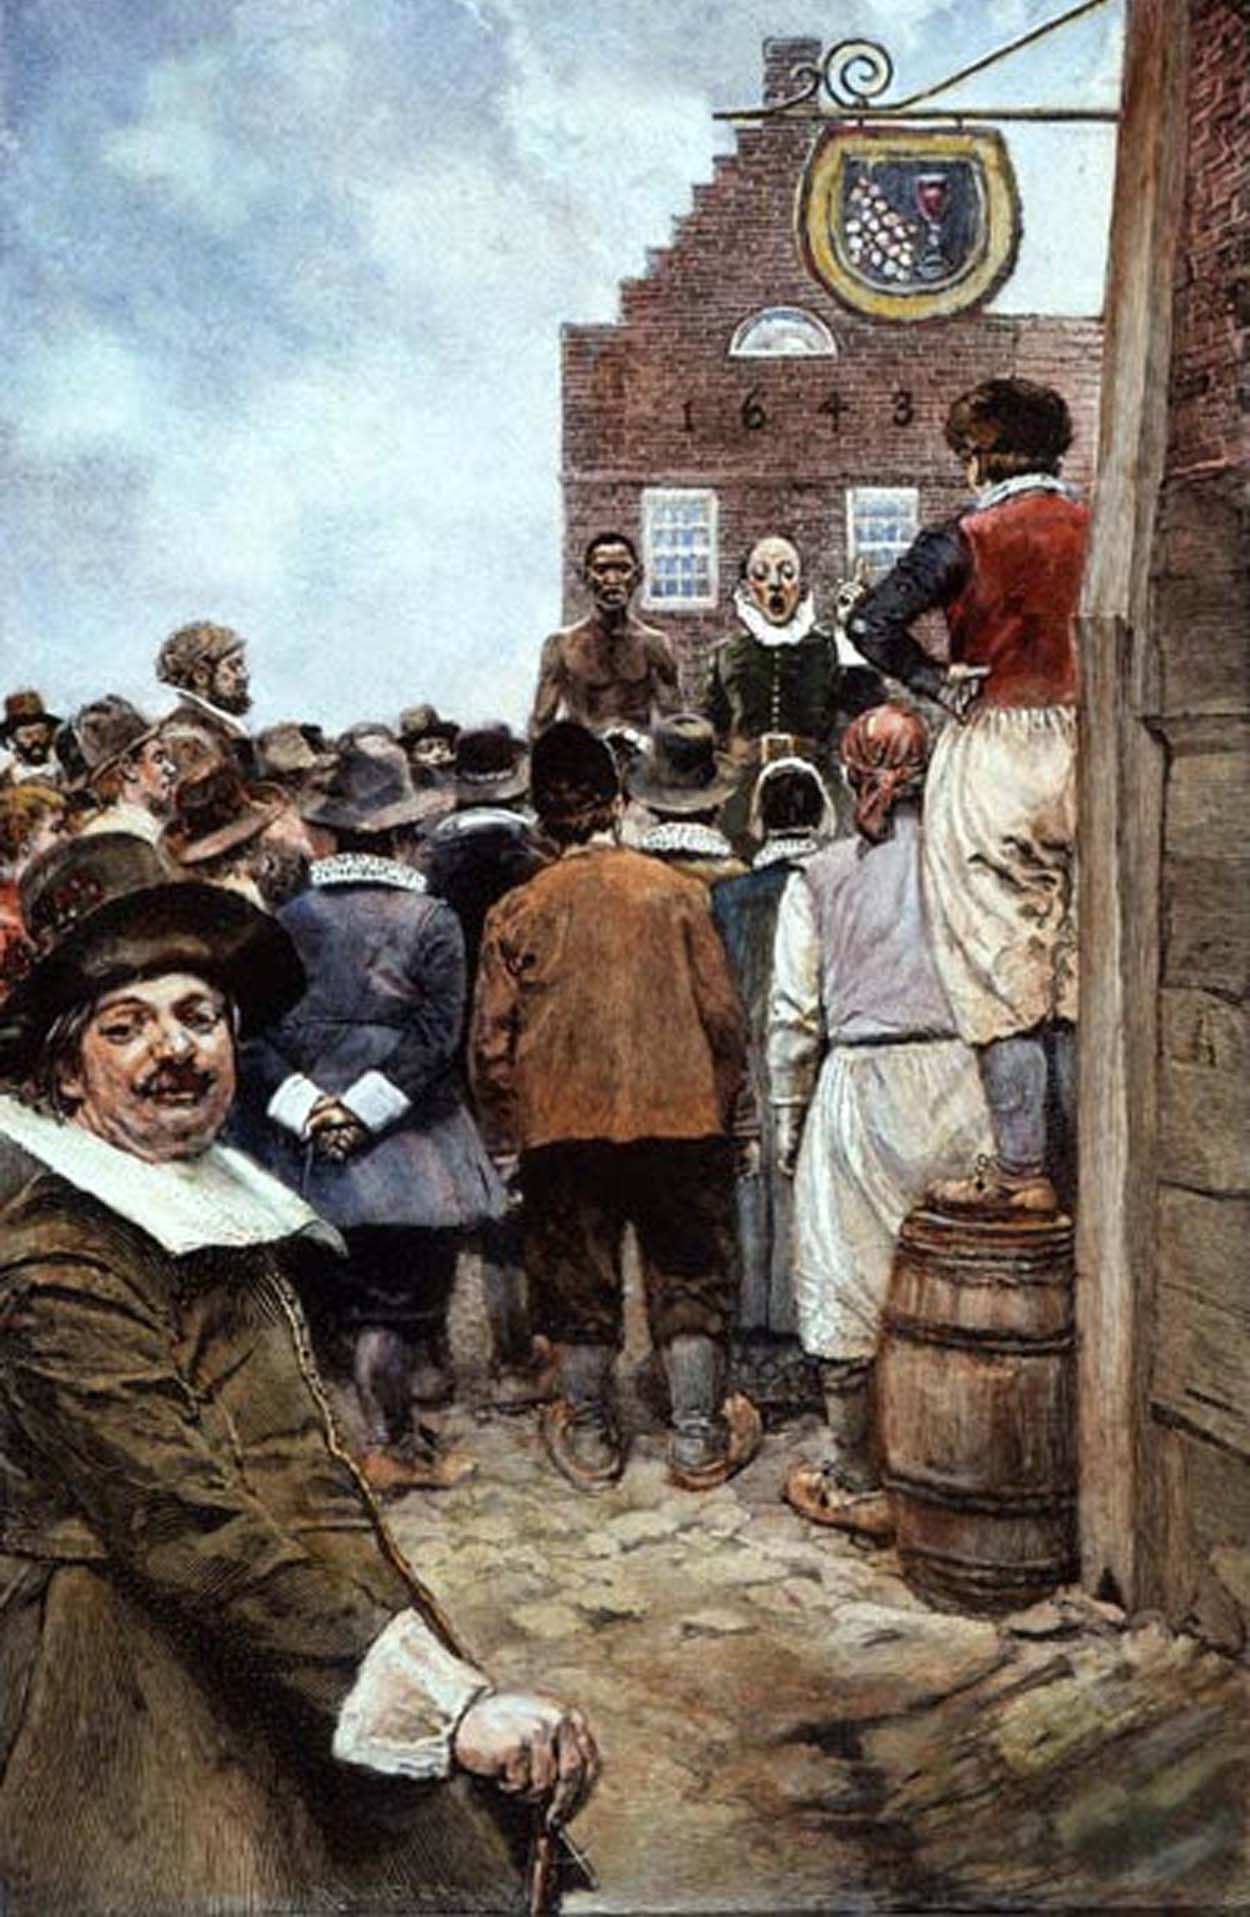 Illustration of the first slave auction in New Amsterdam, which took place in 1655.